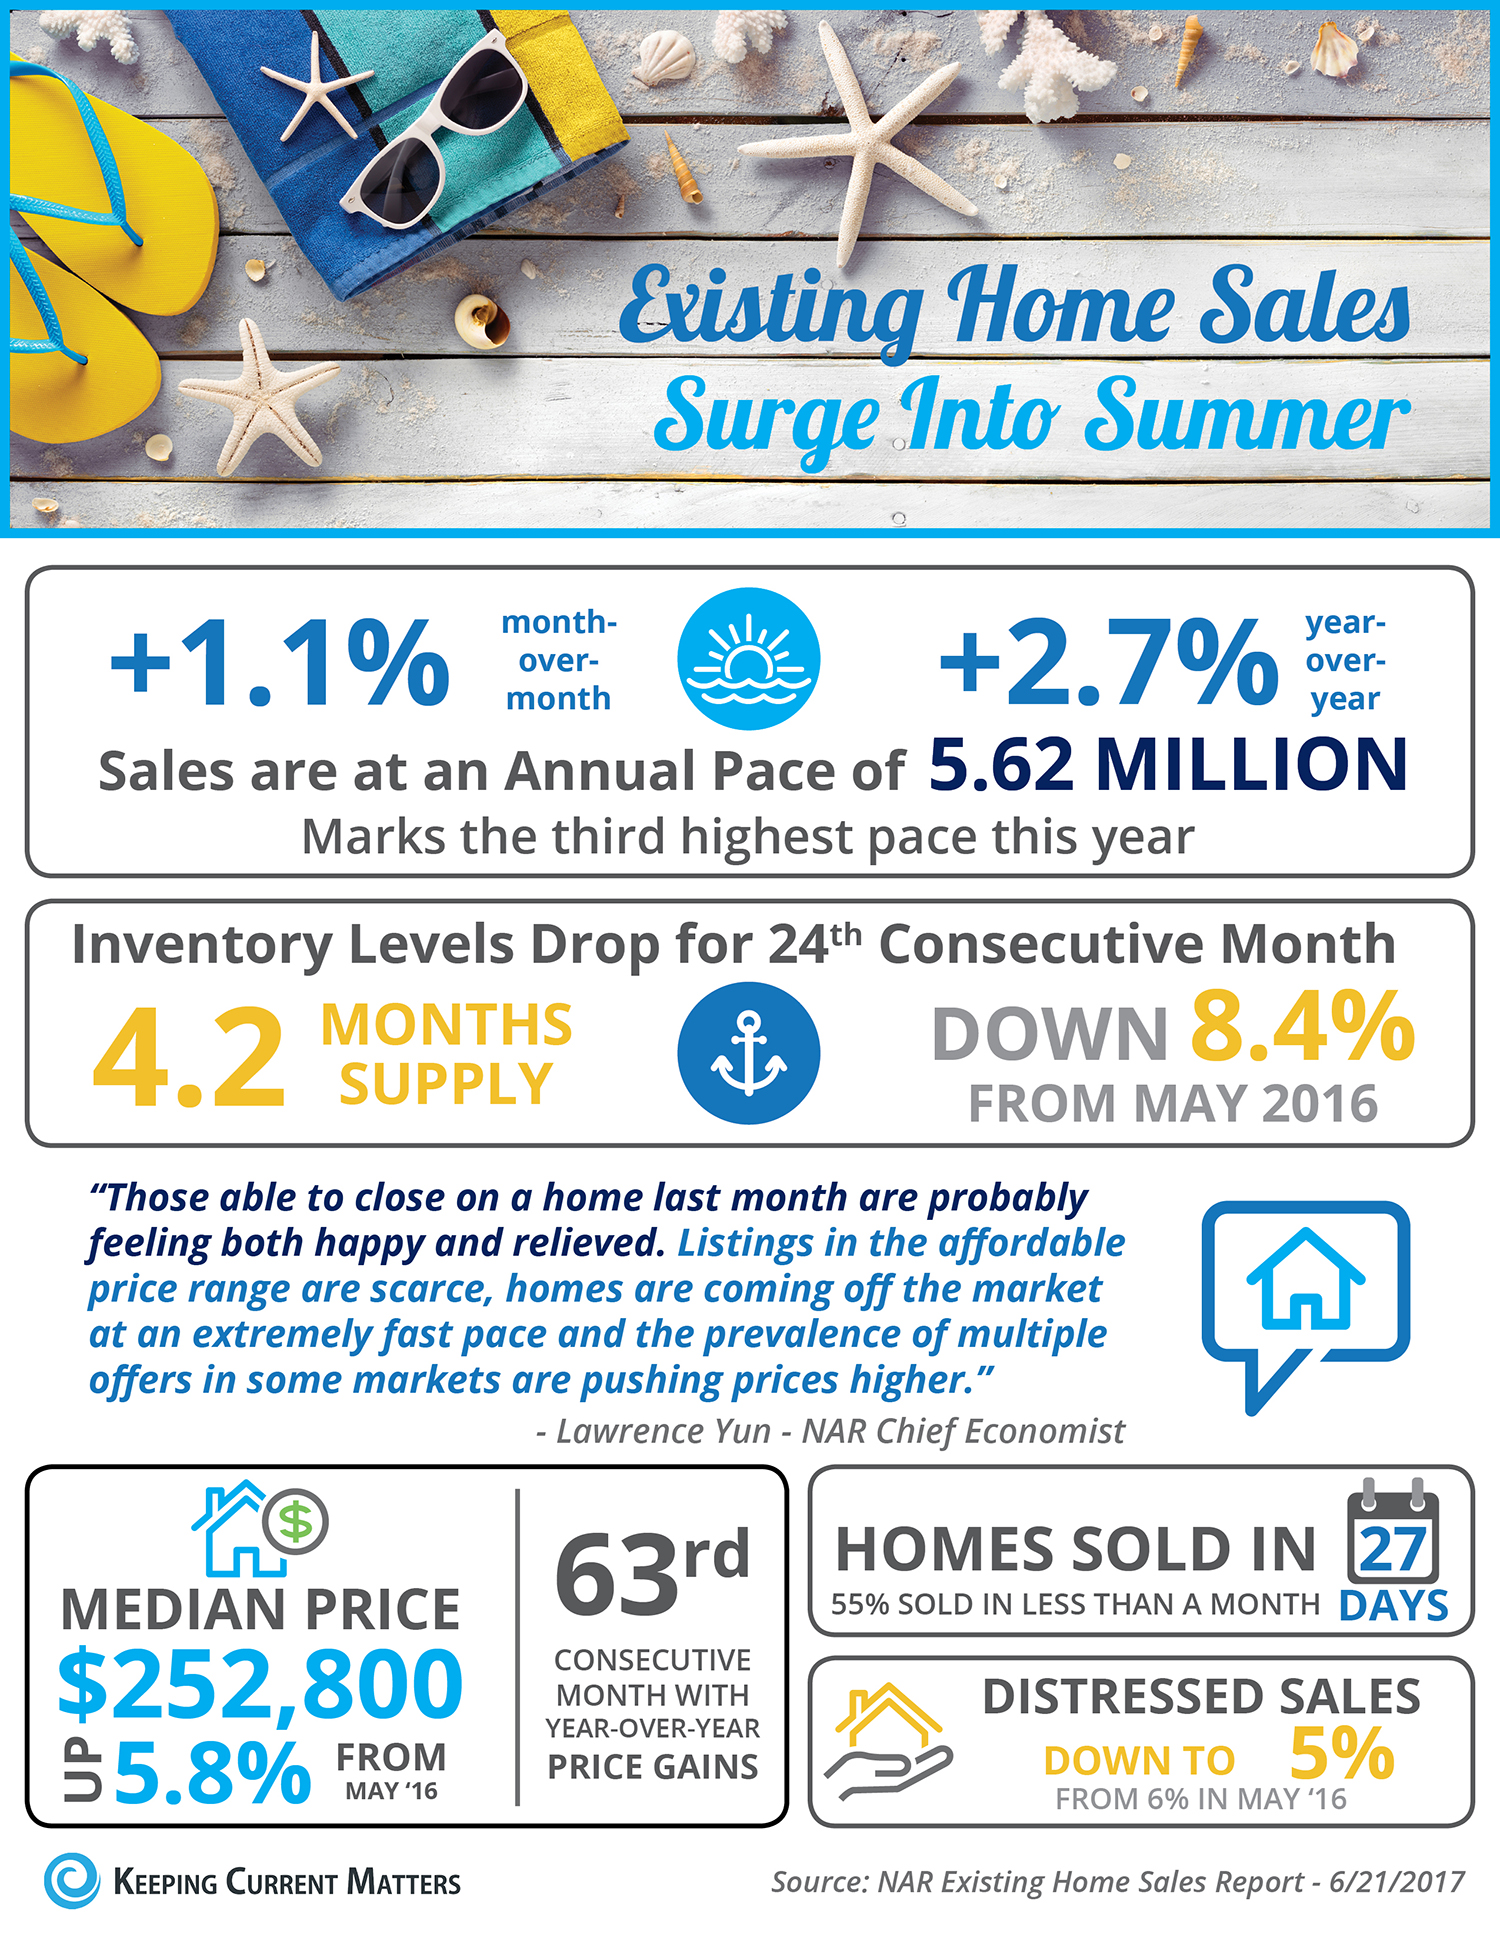 b8c5773a583 Existing Home Sales Surge into Summer [INFOGRAPHIC] - Keeping ...